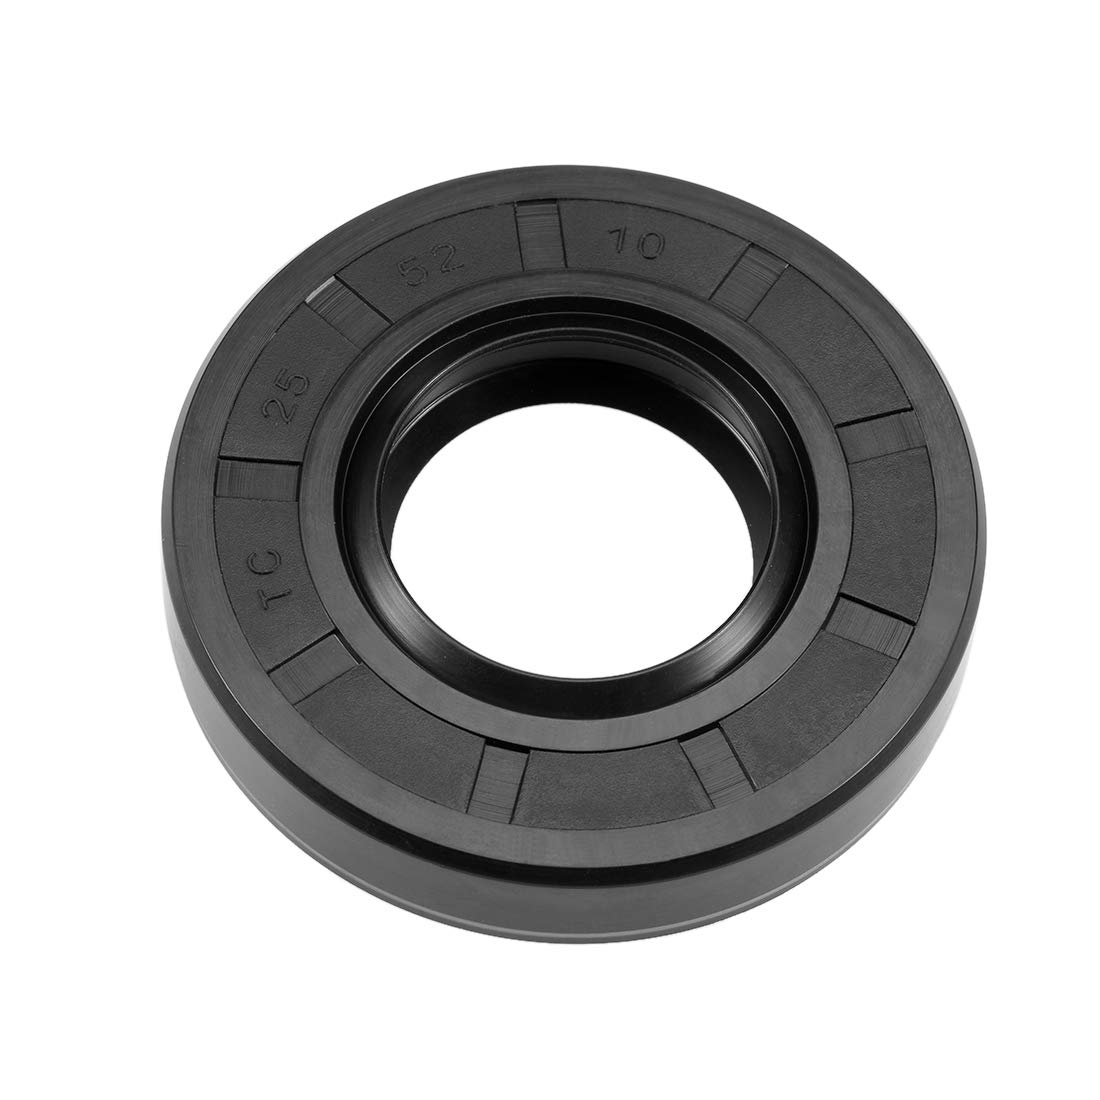 Nitrile Rubber Cover Double Lip sourcing map Oil Seal TC 30mm x 50mm x 10mm